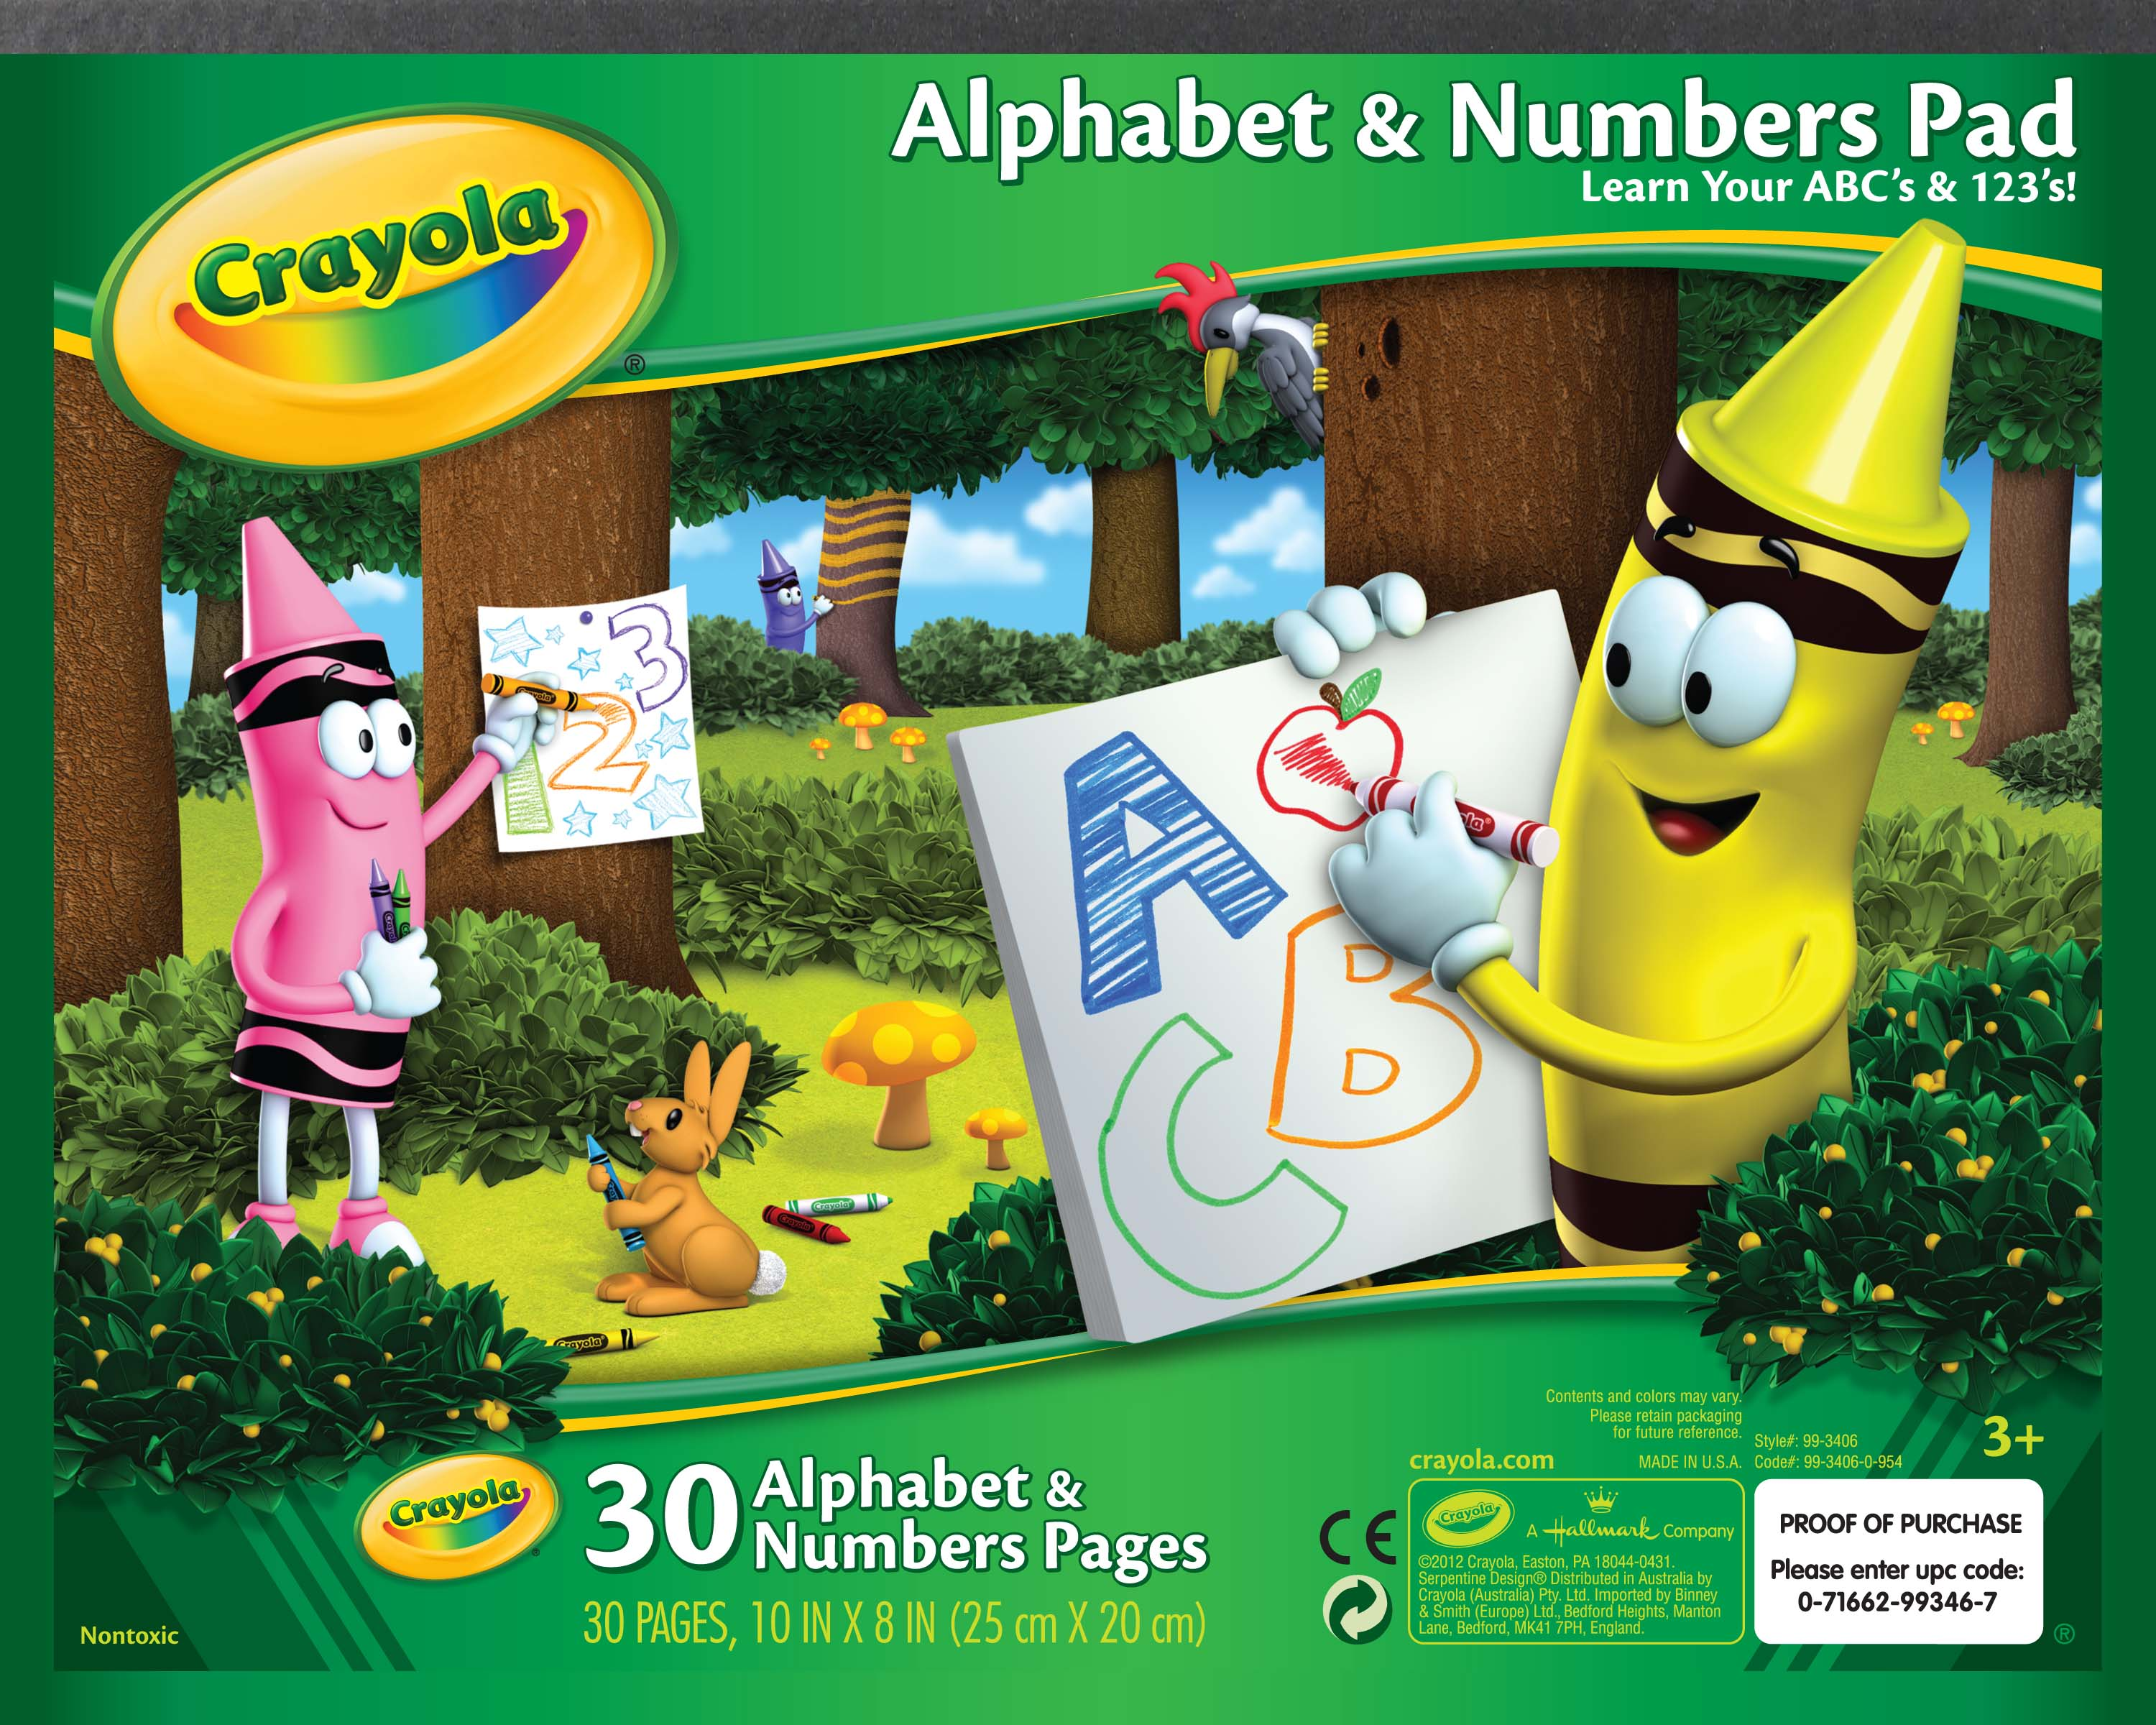 Crayola Alphabet and Numbers Pad, Learn your ABC's and 123's, 30 pages by Crayola